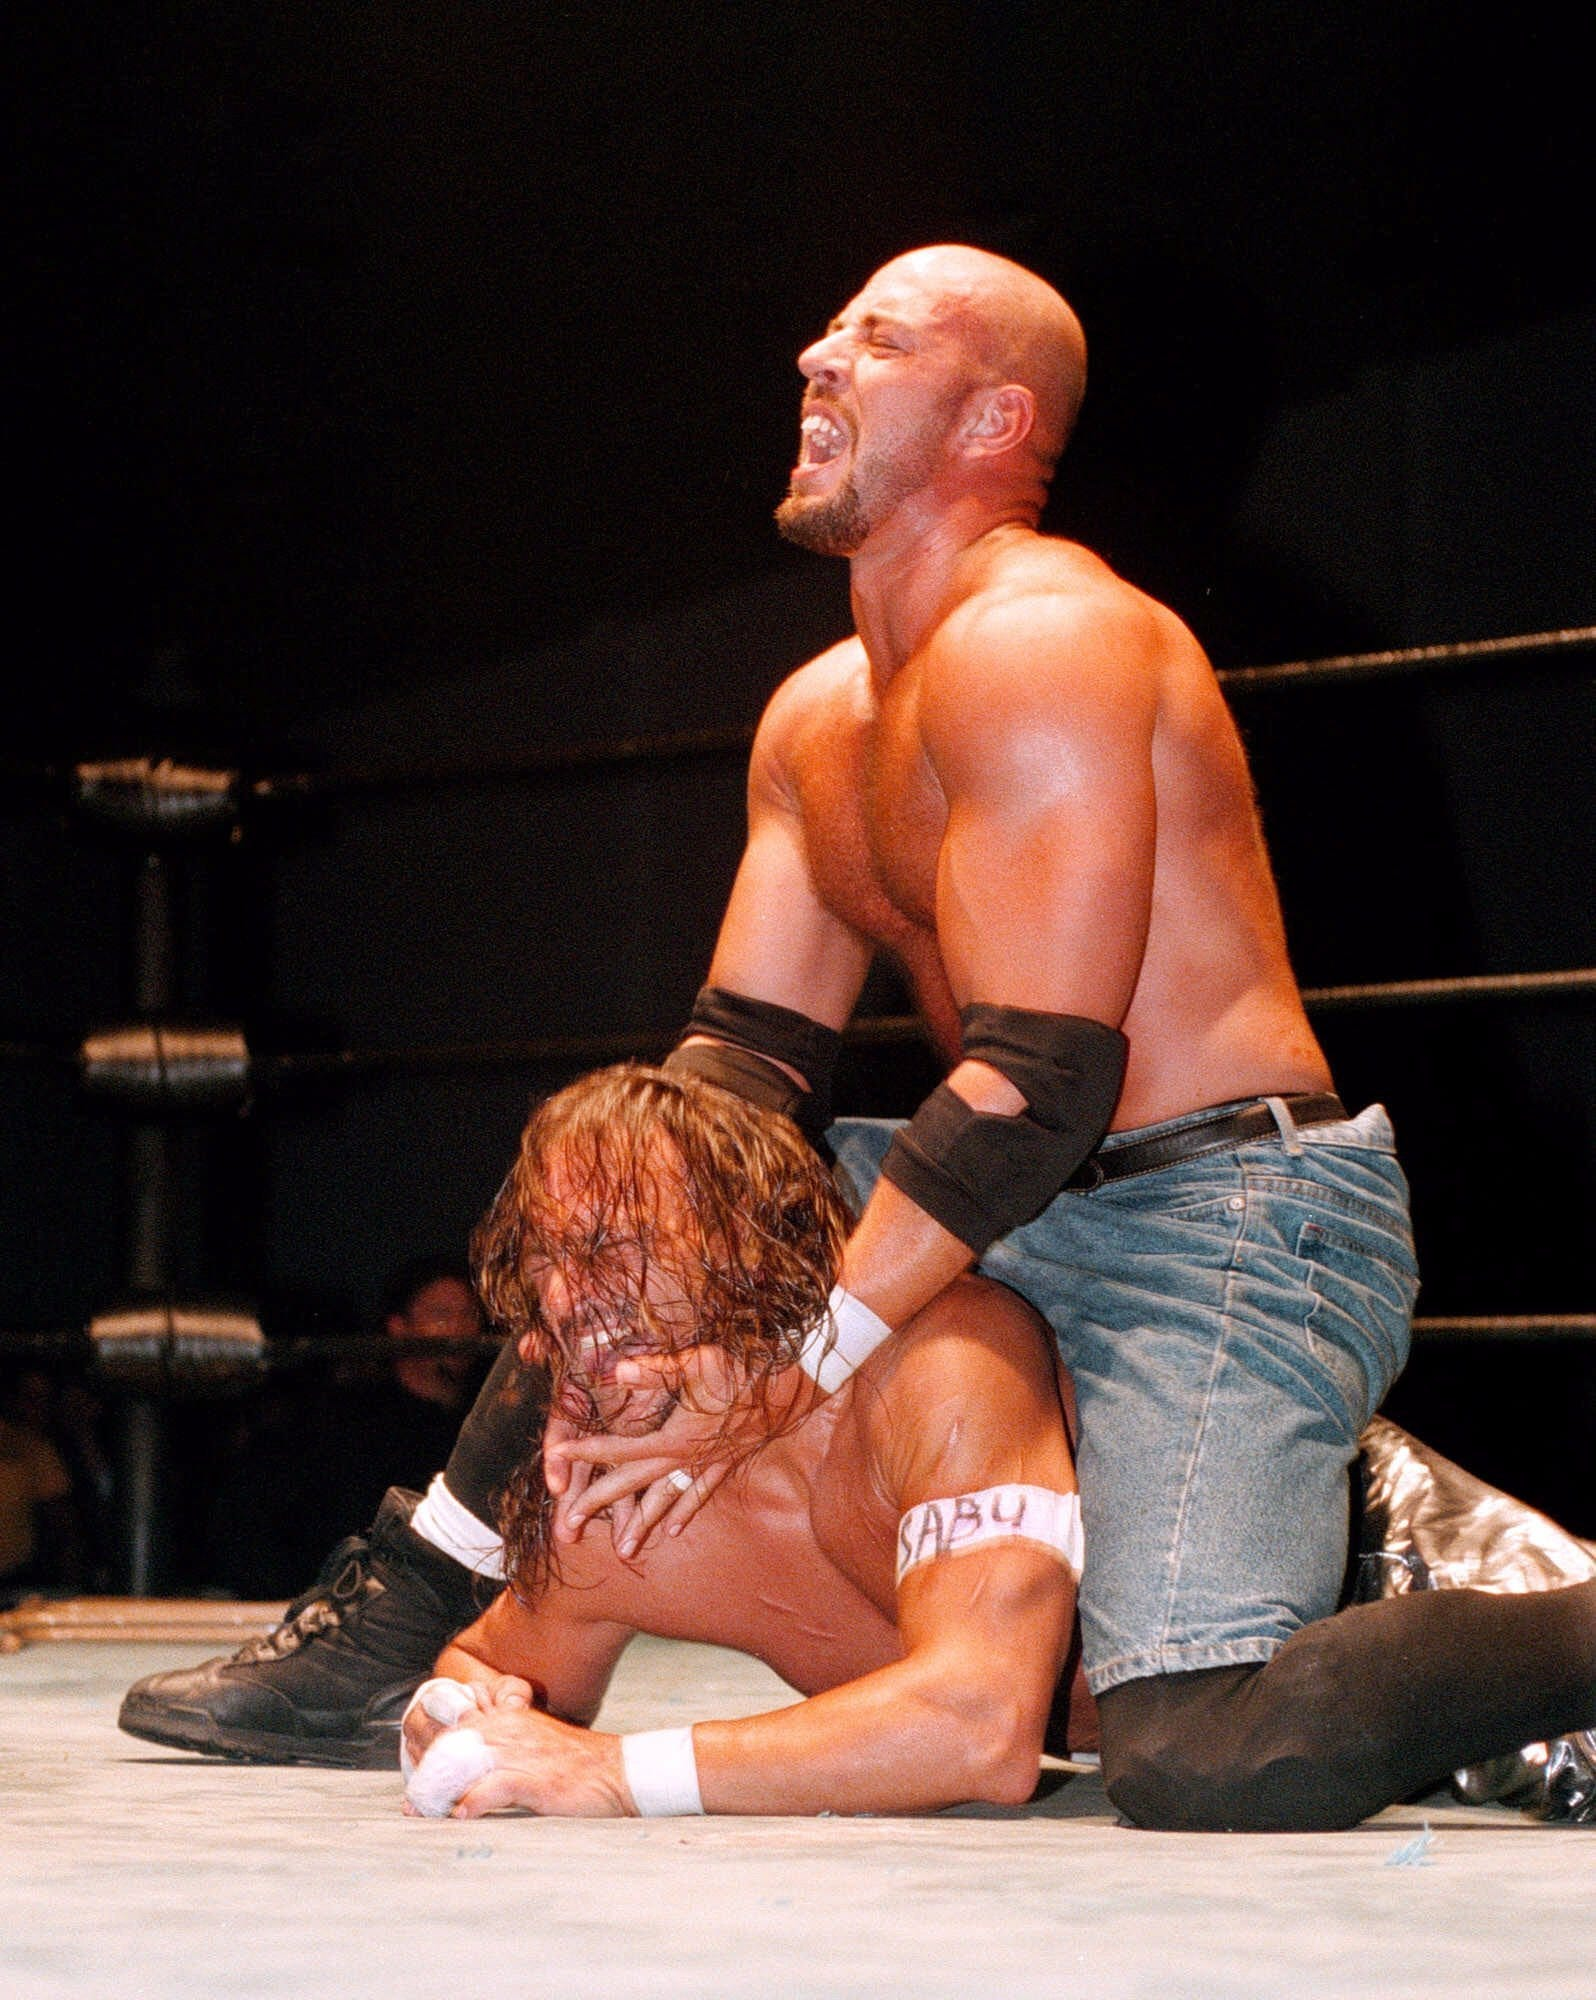 Wrestler Justin Credible puts a choke hold on his opponent Sabu during a 2009 Extreme Championship Wrestling match in Orlando. Sabu, whose real name is Terry Brunk, grew up in Lansing.